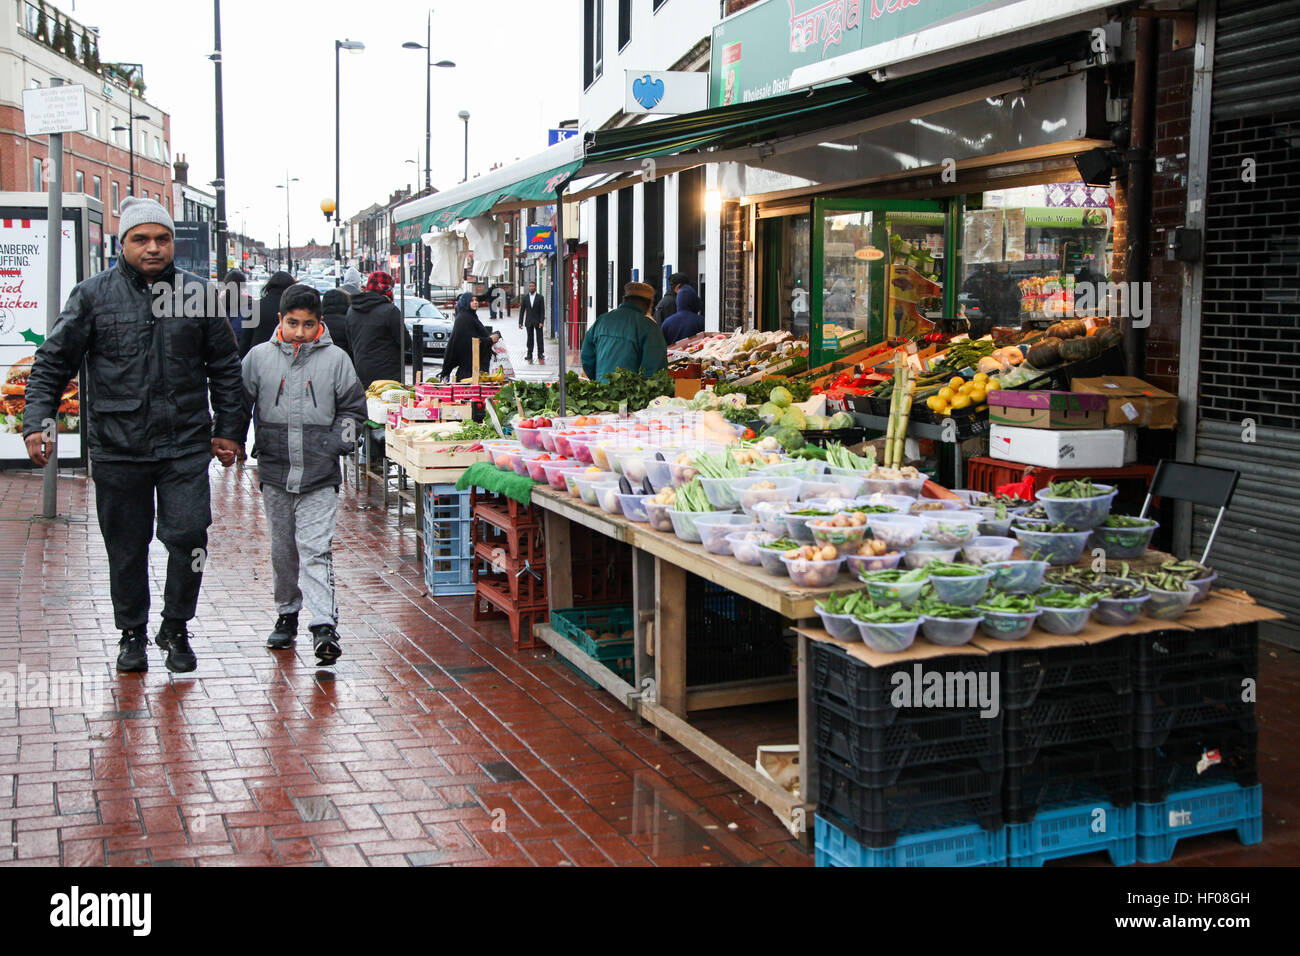 Luton, UK 25 Dec 2016 - Shops are open as normal for business on Christmas Day in Bury Park shopping center in Luton, - Stock Image